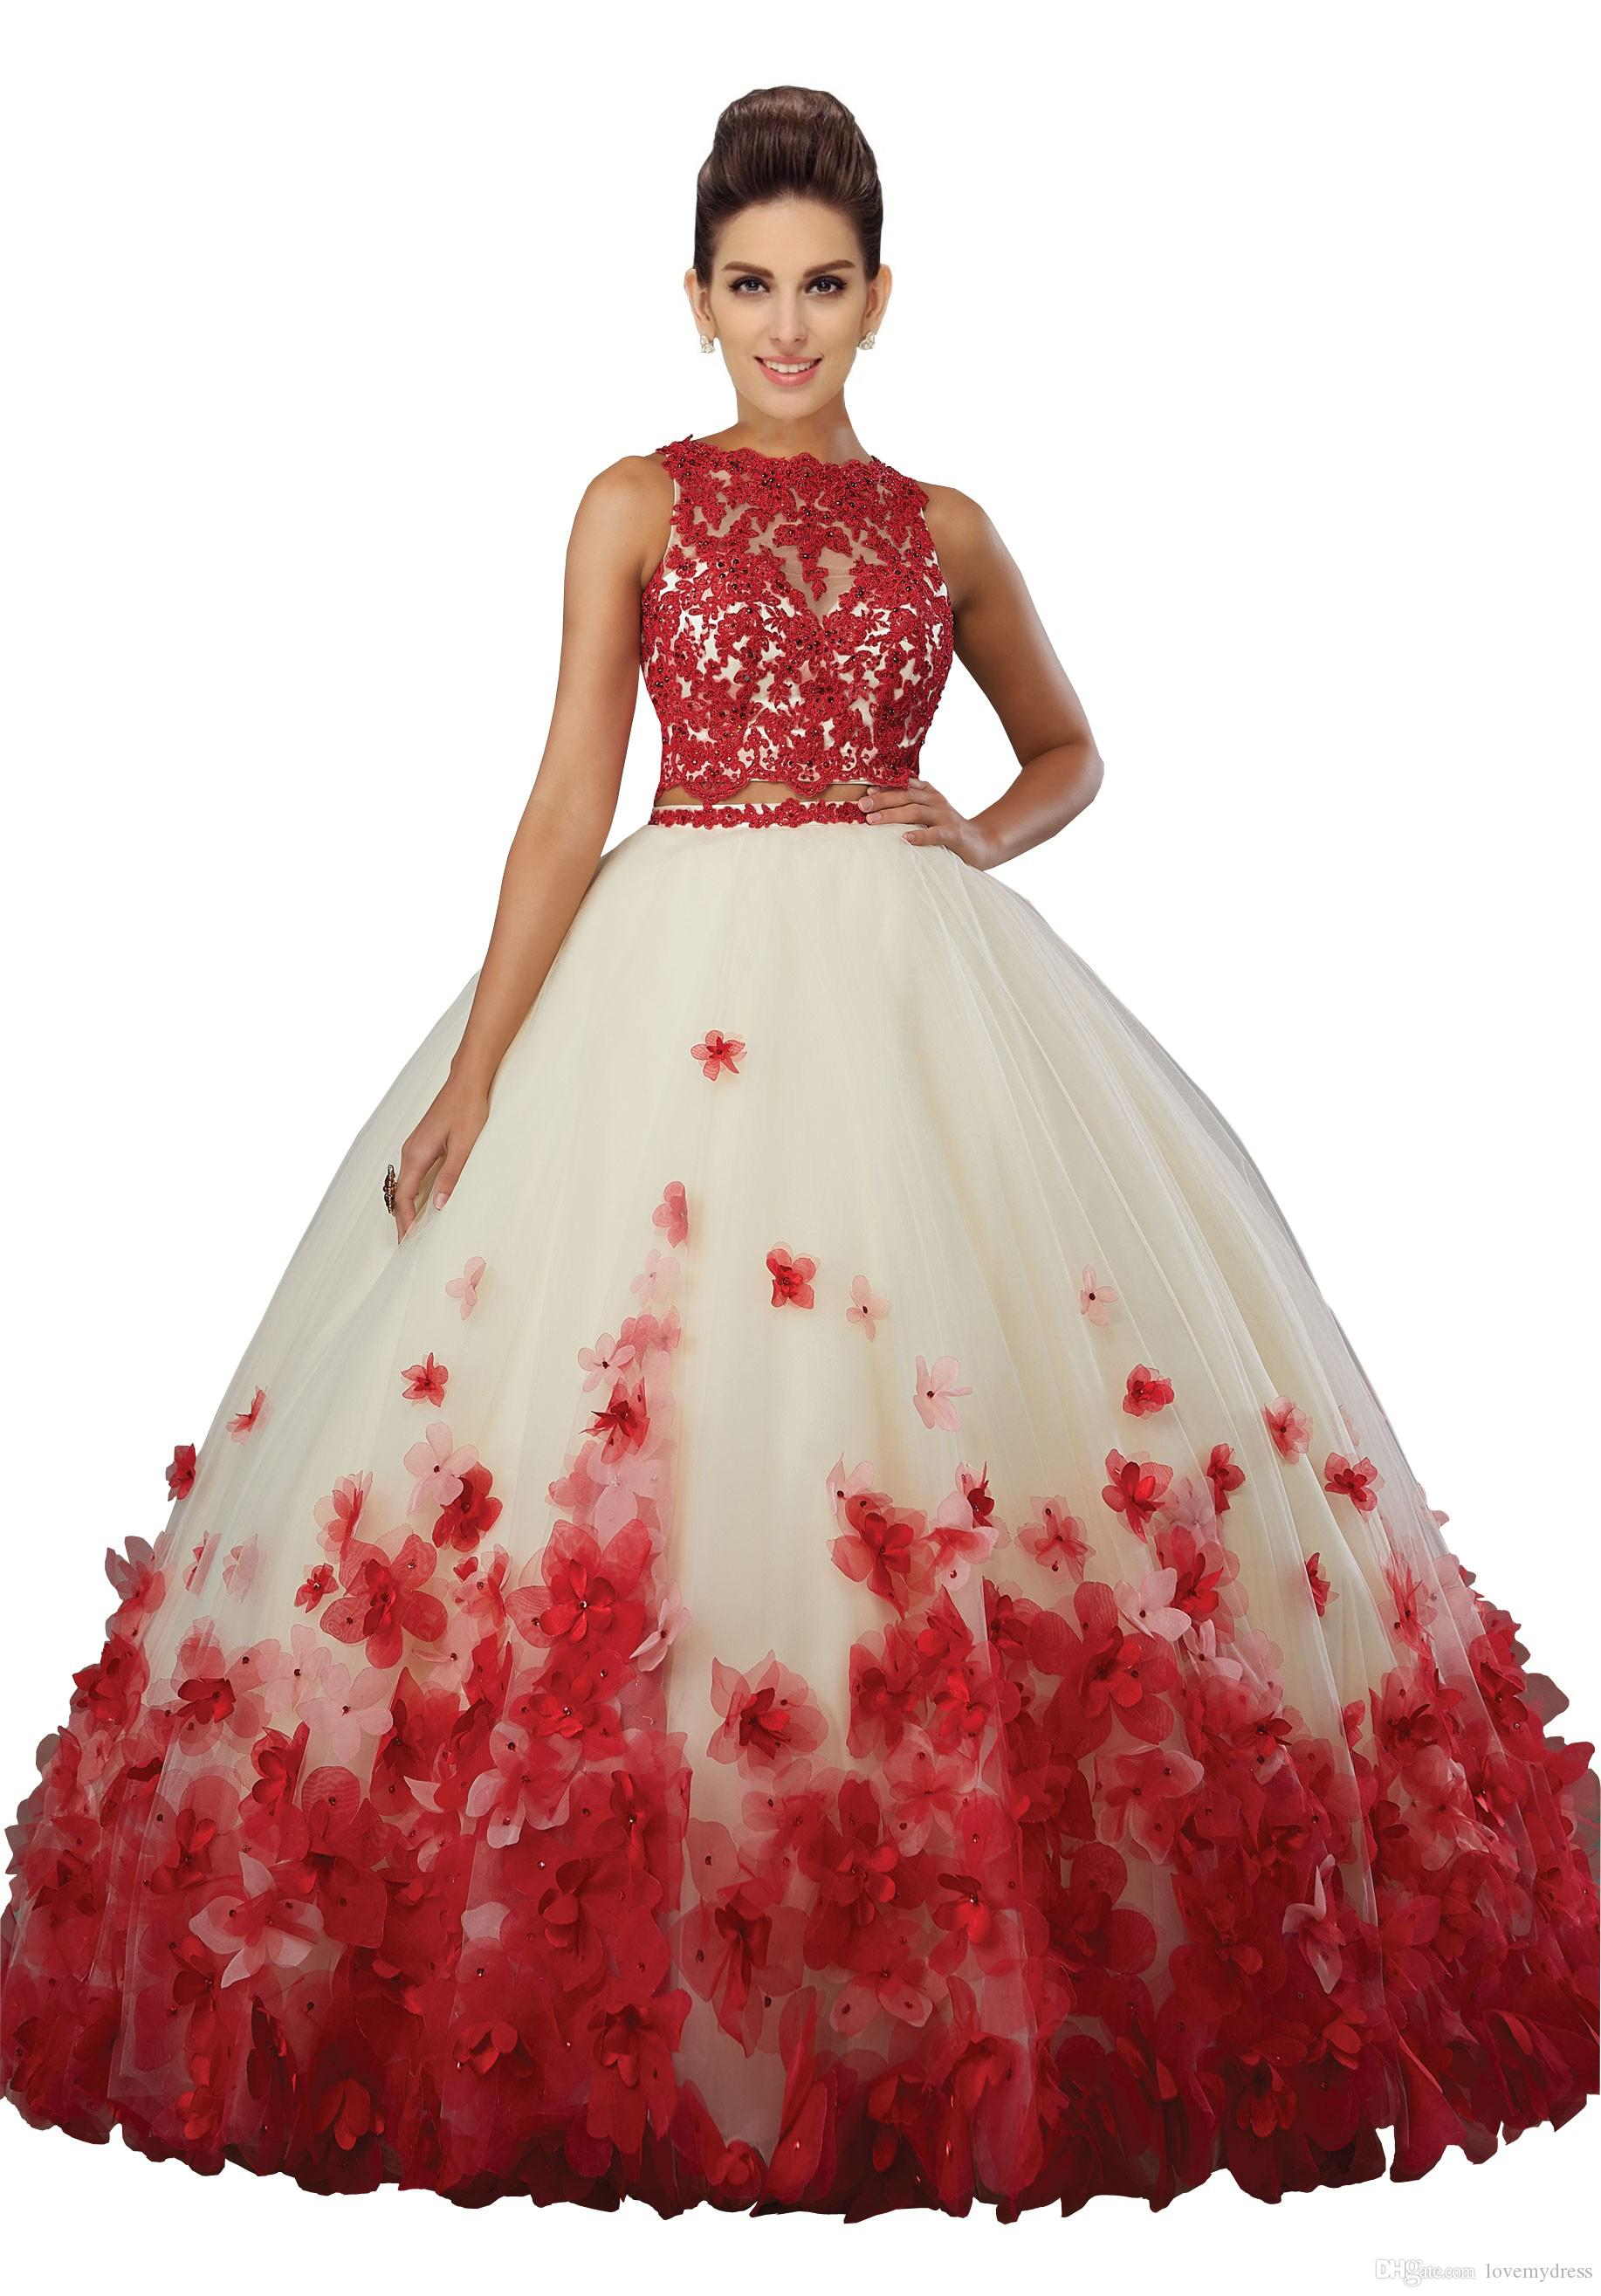 a01e8bb4b0 Fashion Two Pieces Quinceanera Prom Dresses Cheap 2019 New Stylish 3D  Floral Flowers Sheer Jewel Neck Applique Red Lace Bead Sweet 16 Dress